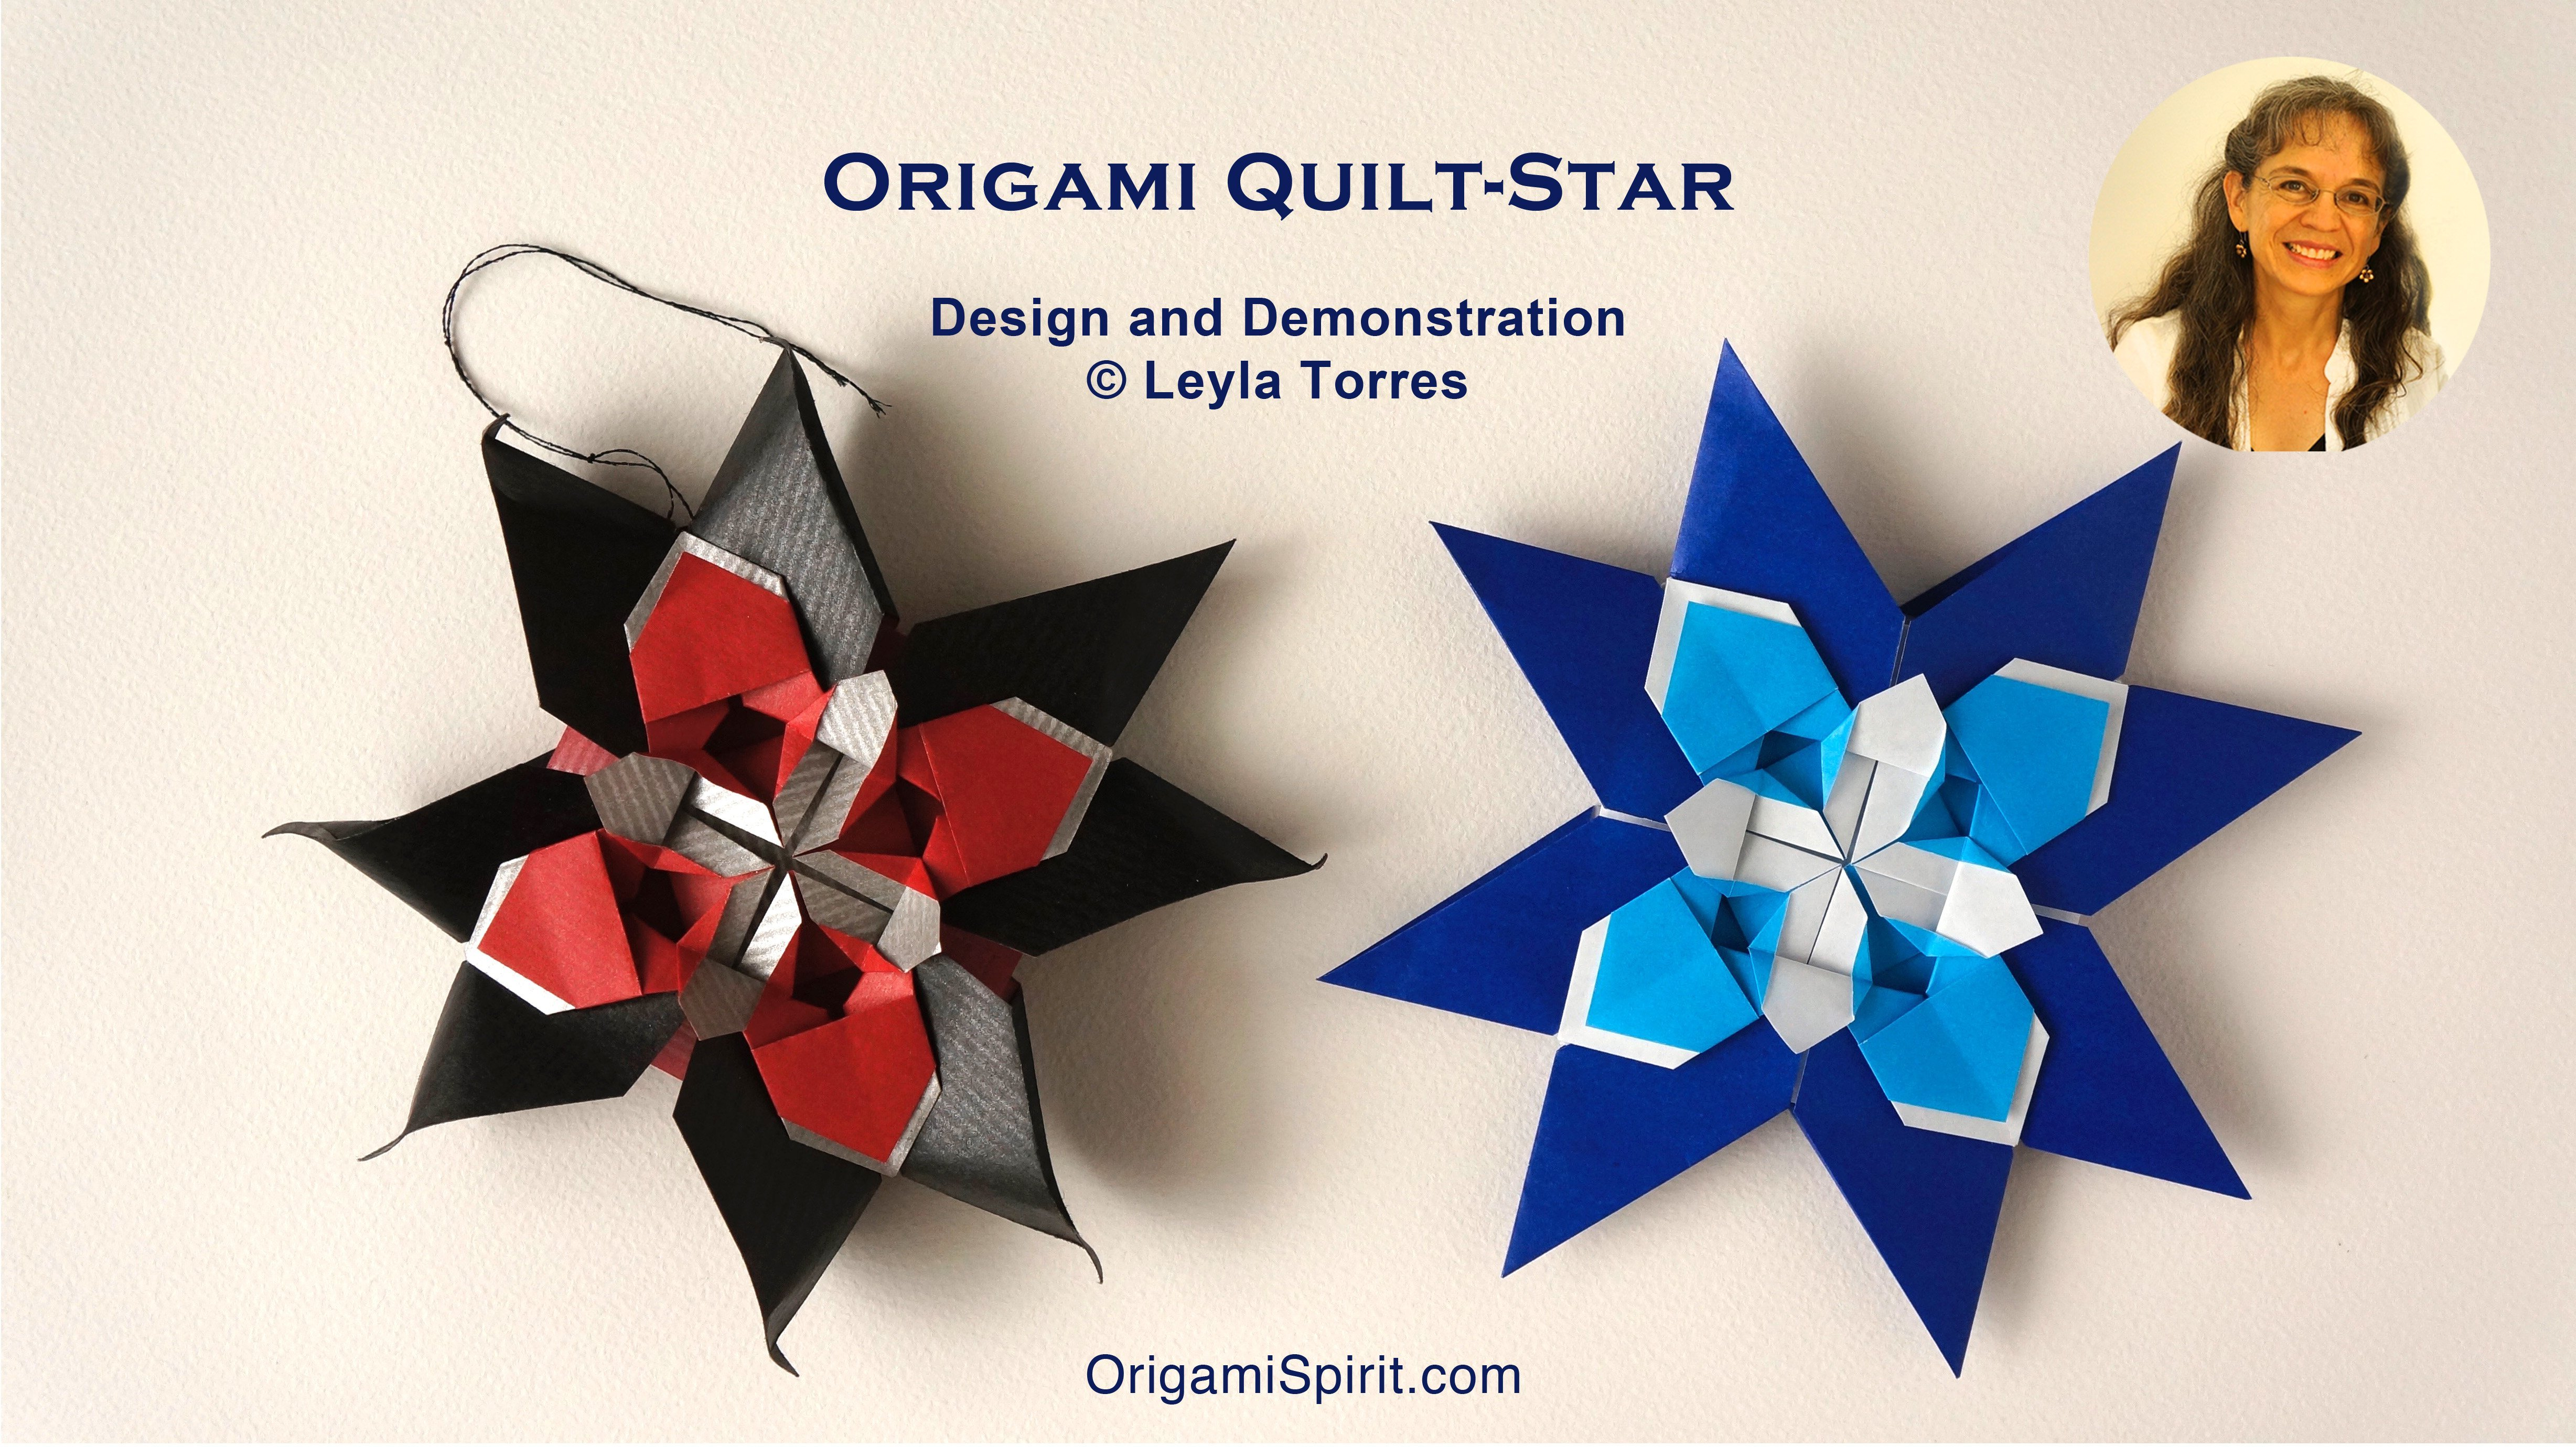 Make an Origami Quilt Star - Paper Craft for Children 7 to 99